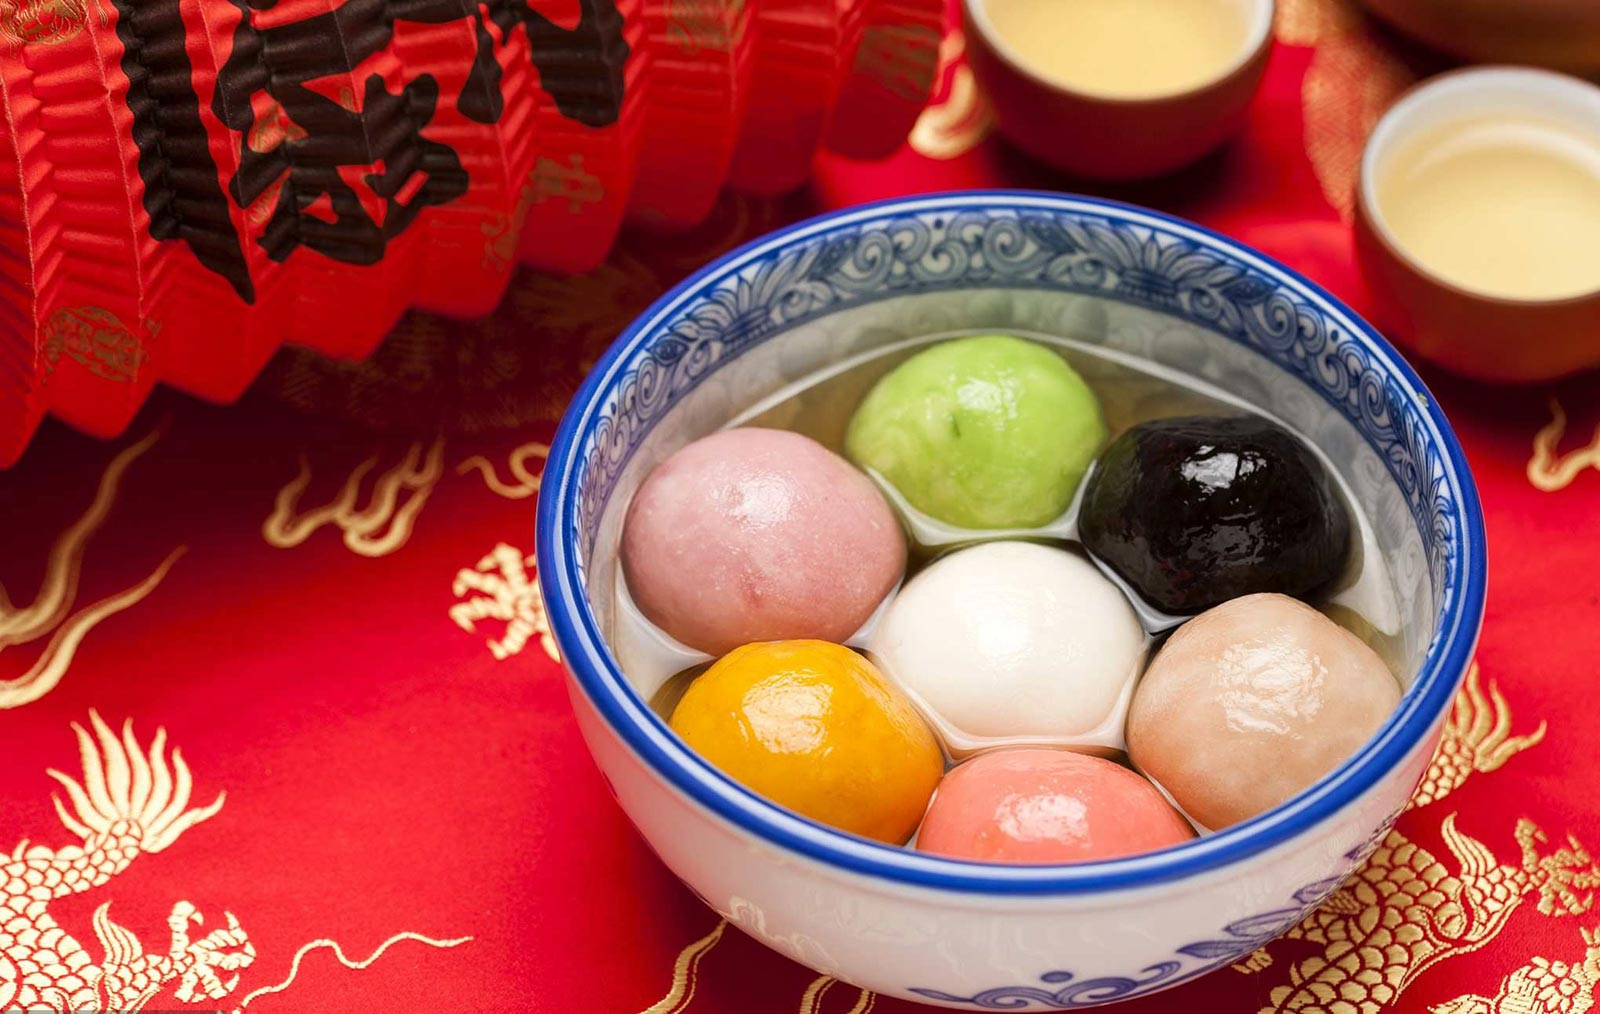 Image for Ever had the colorful Chinese glutinous rice balls, tan yuan?